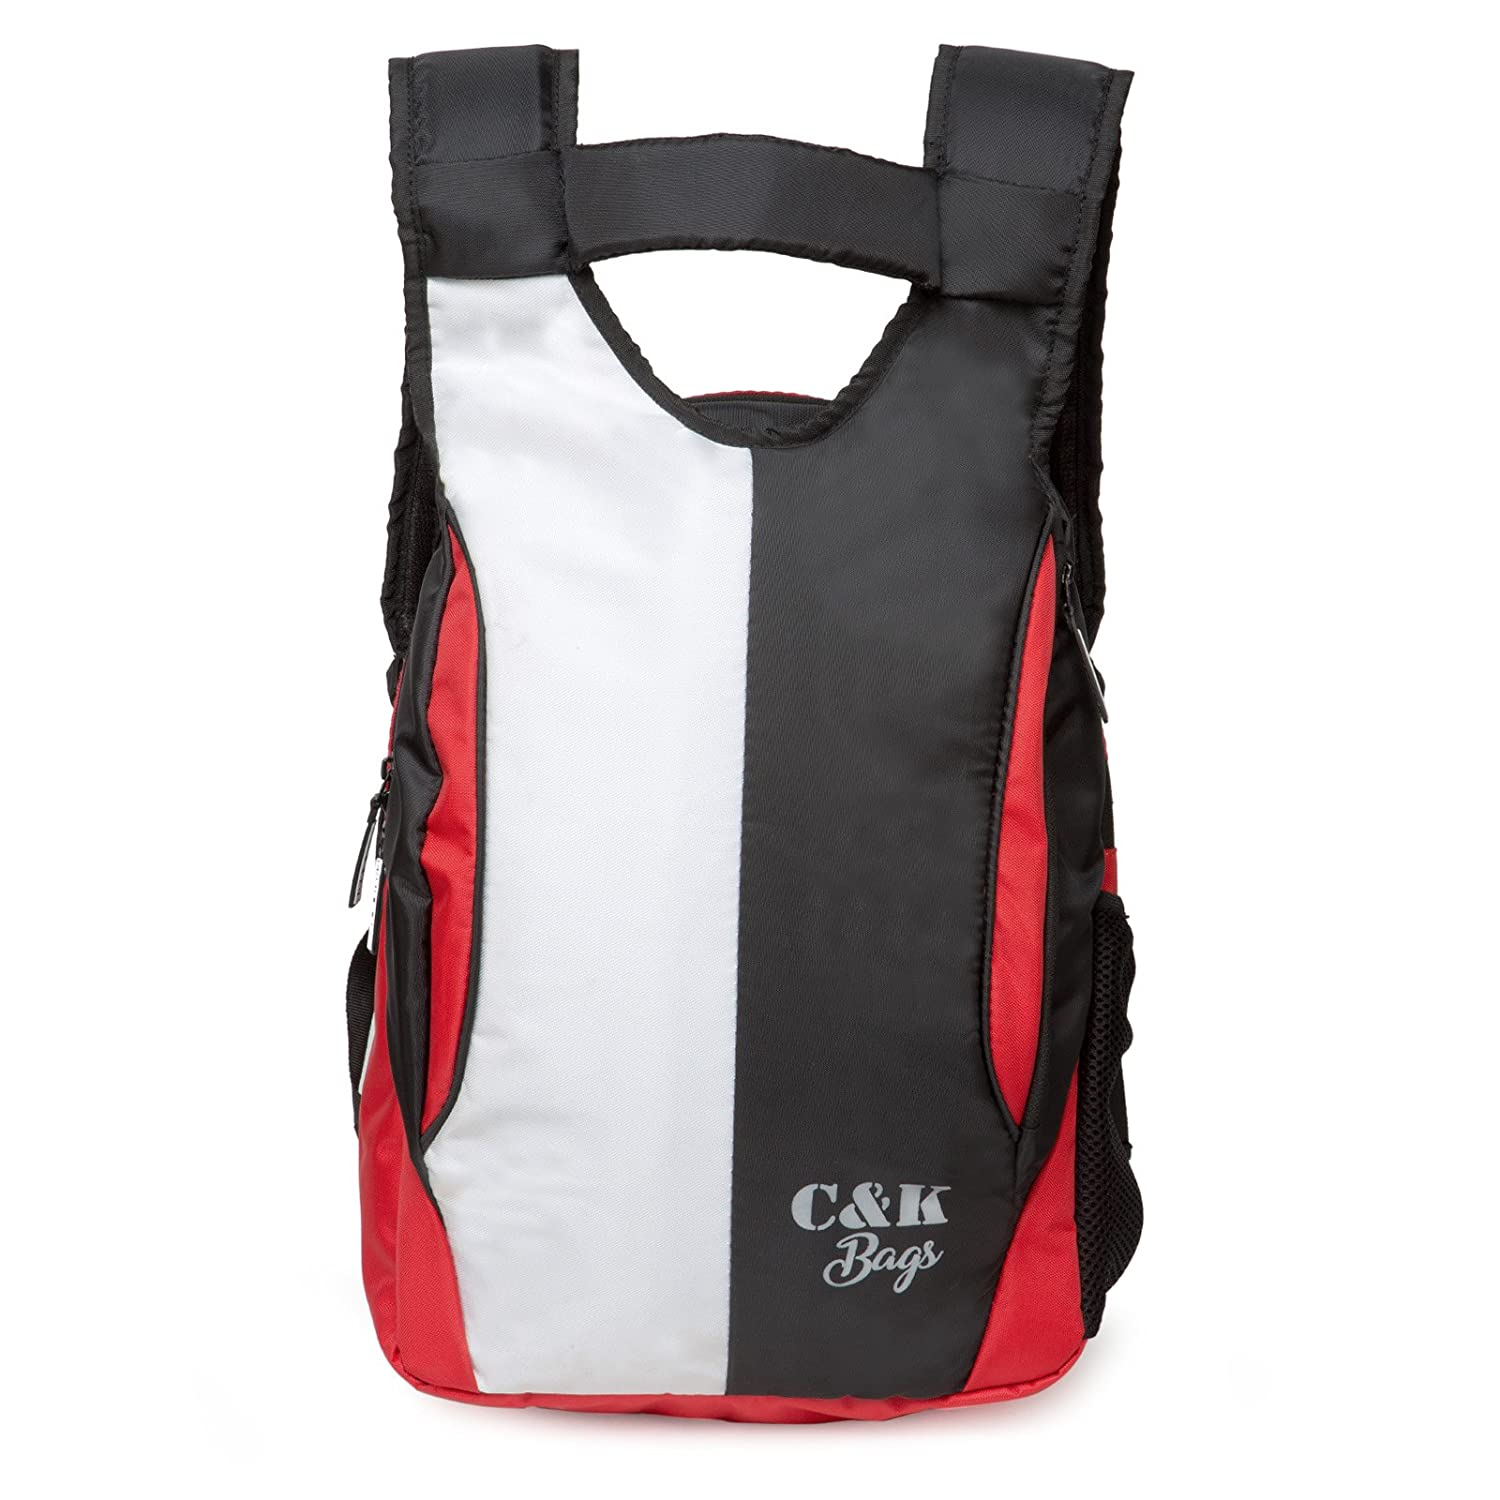 Chris & Kate School Bag | College Bag | Casual Backpack (21 Litres)